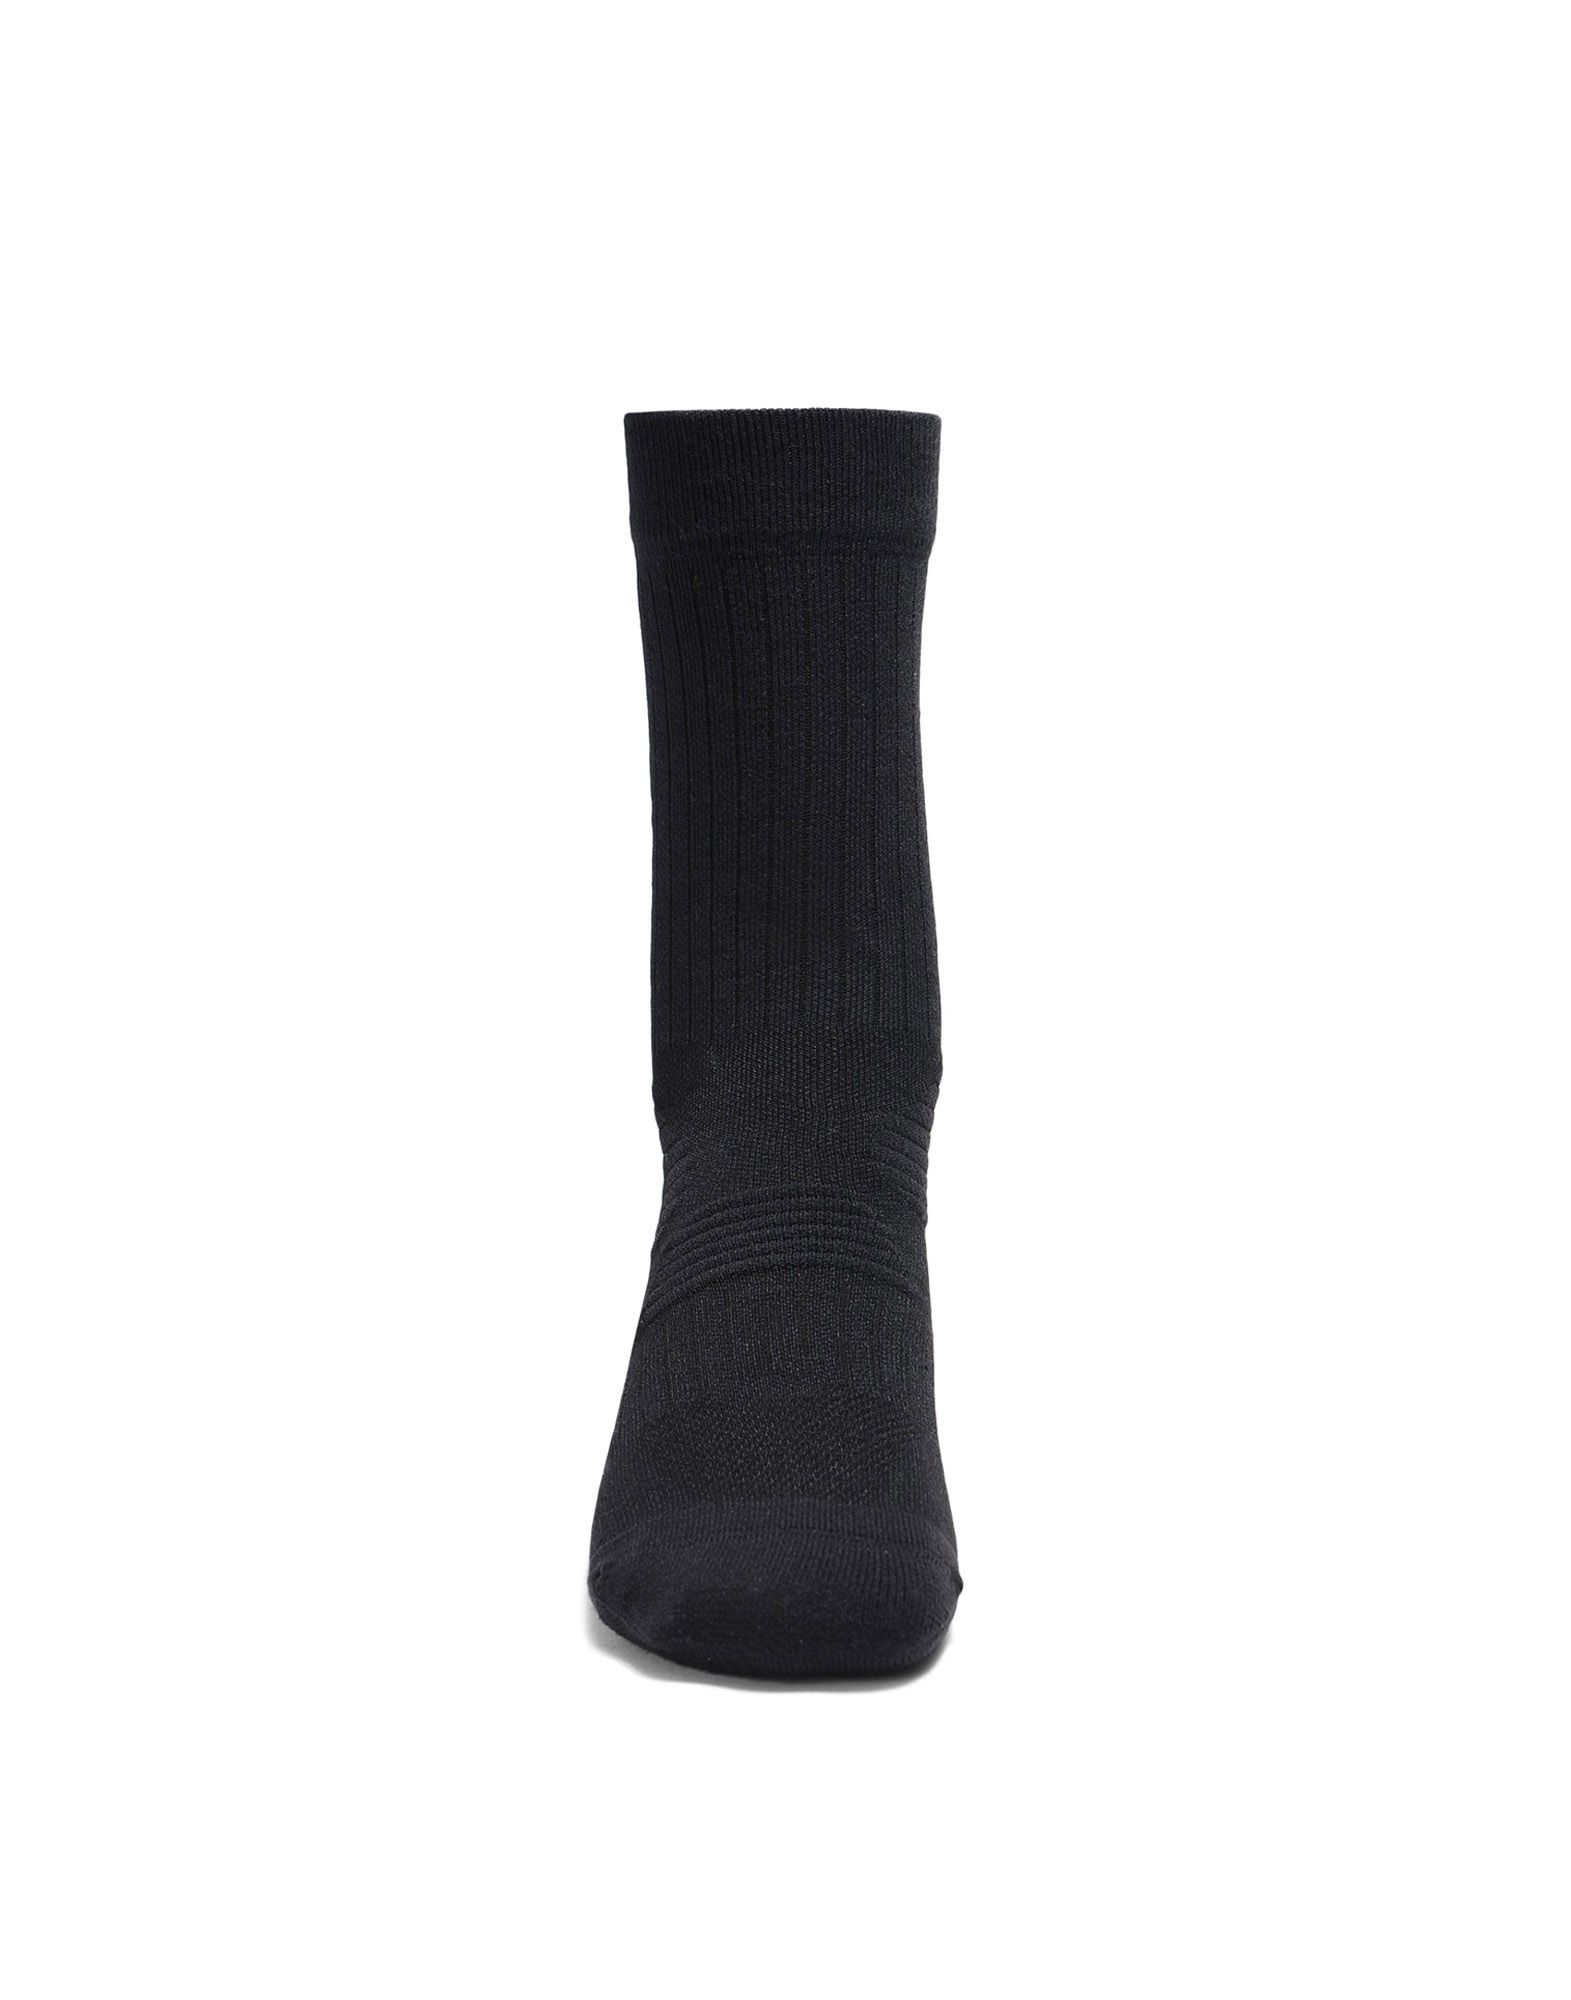 Y-3 Y-3 Tube Socks Socks E r